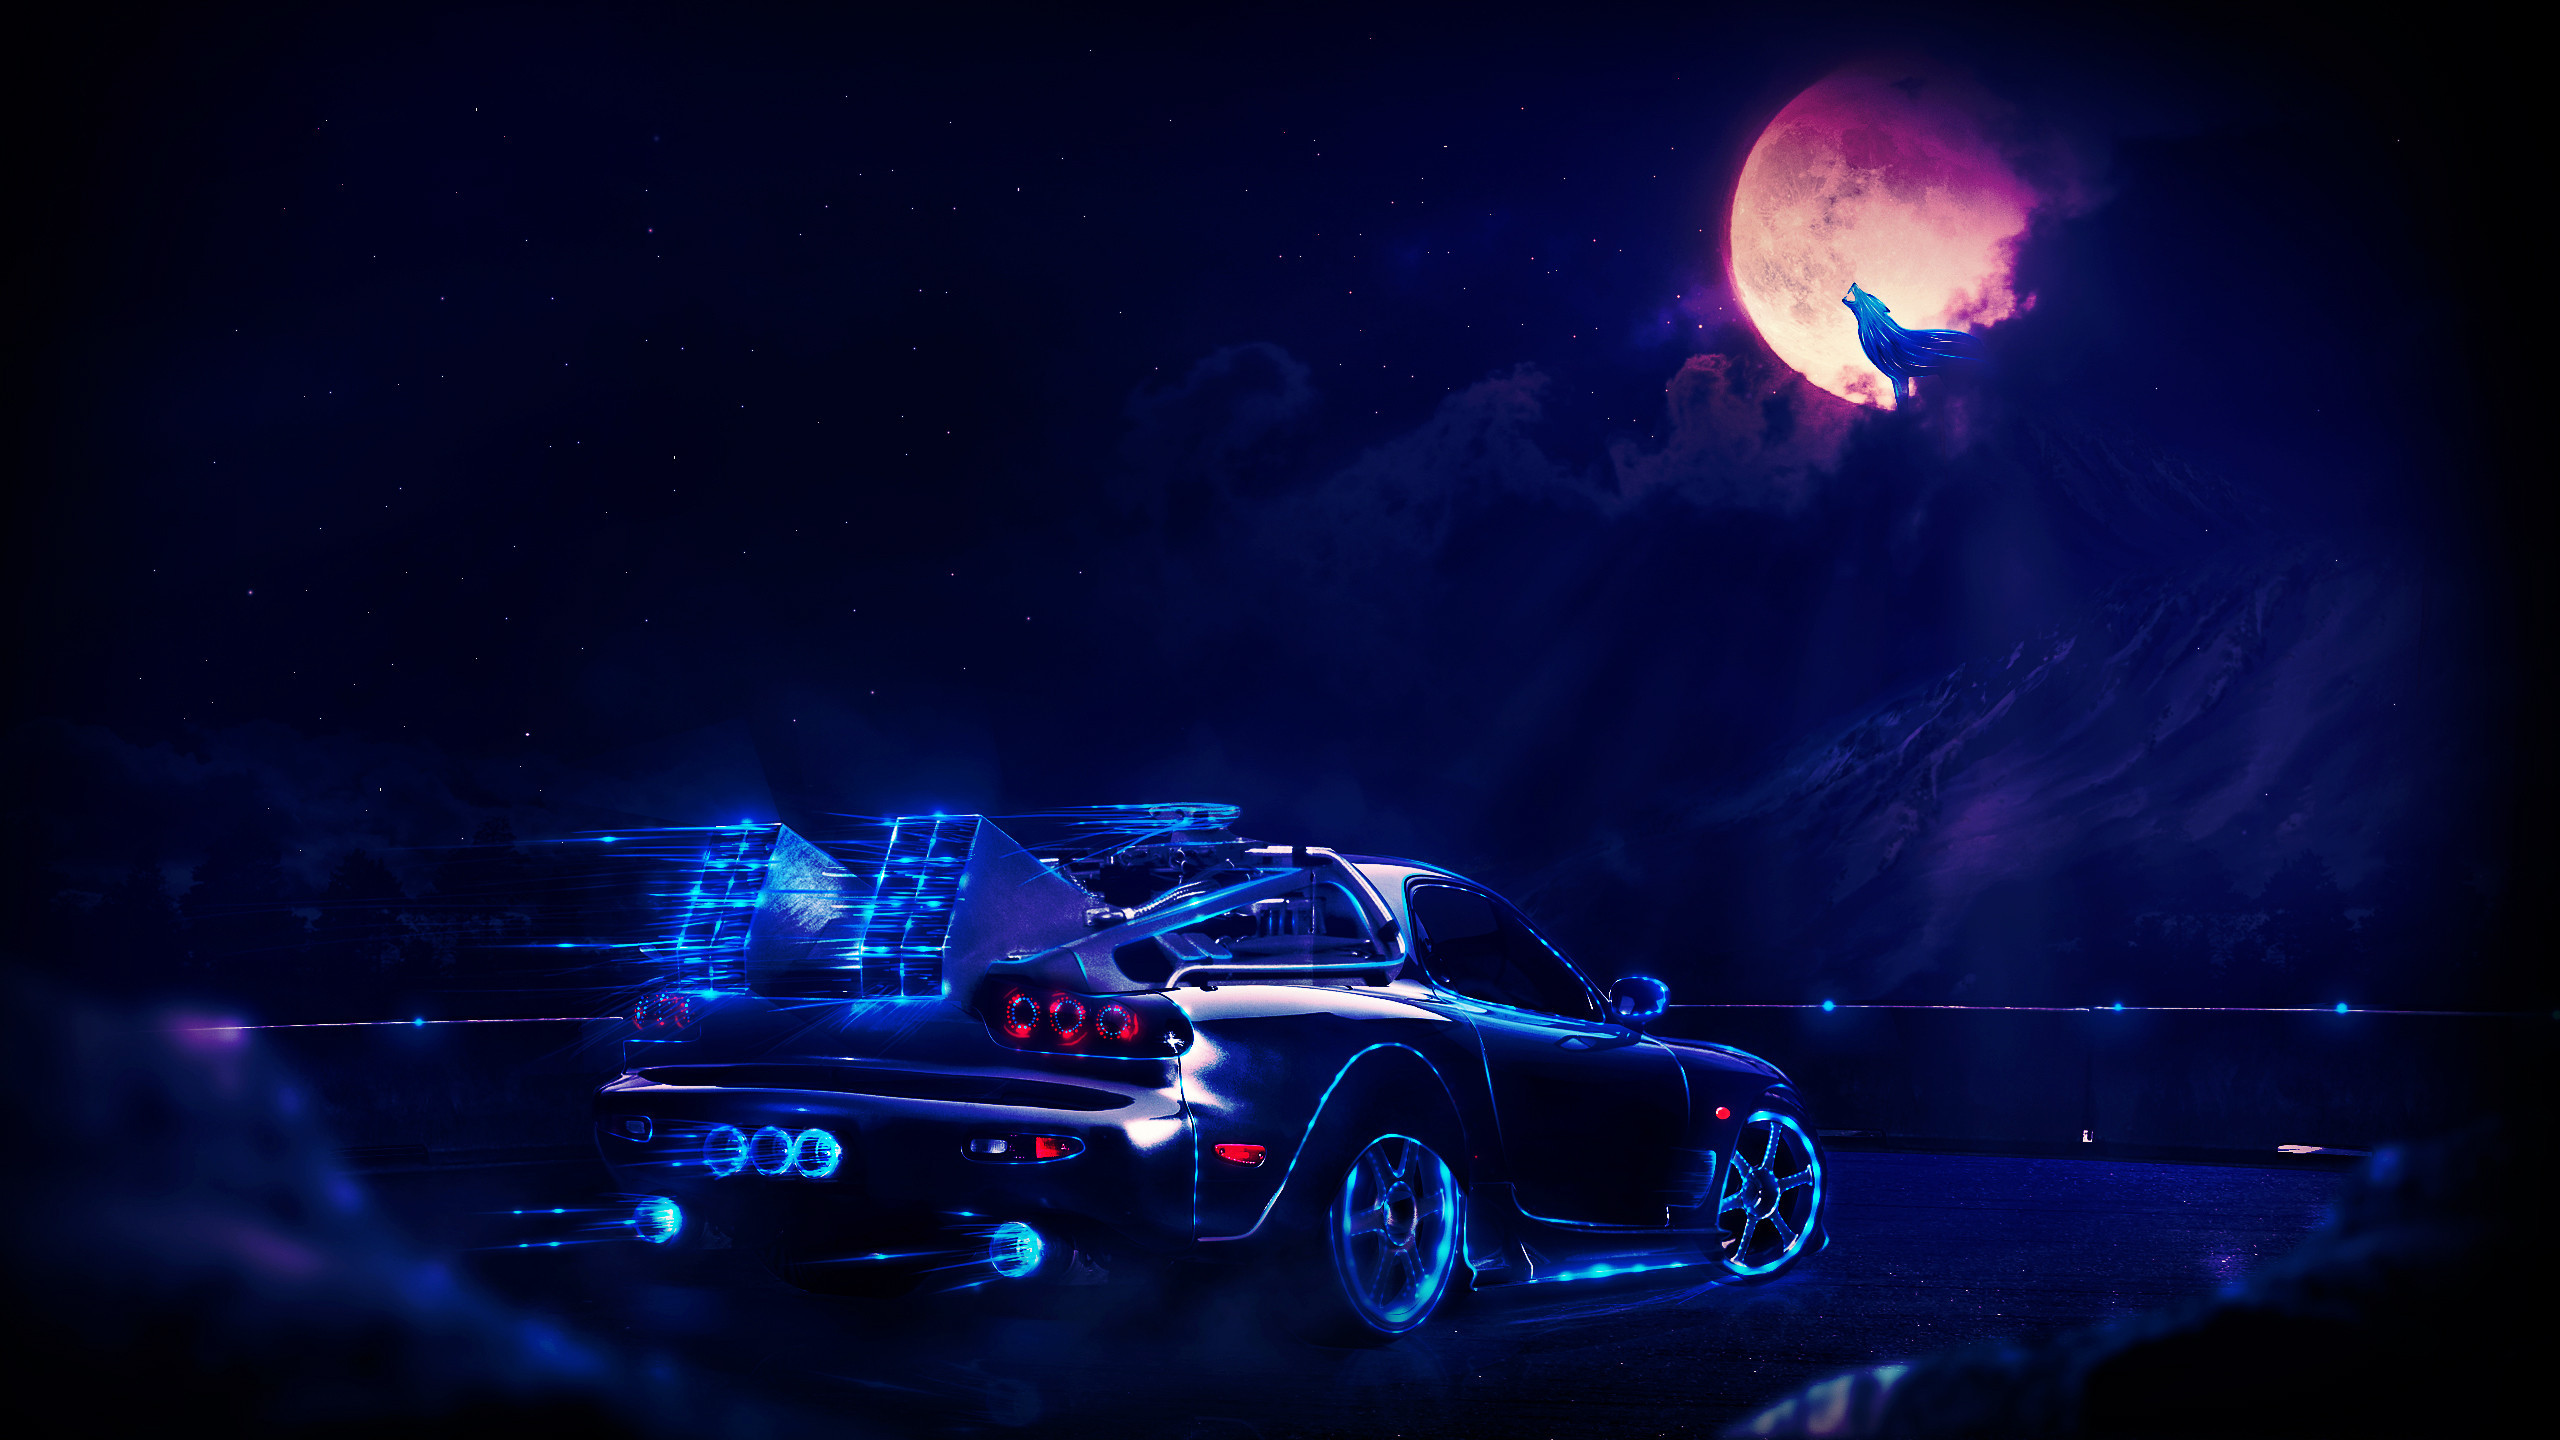 madza rx7 neon wolf night artwork hd artist 4k wallpapers images